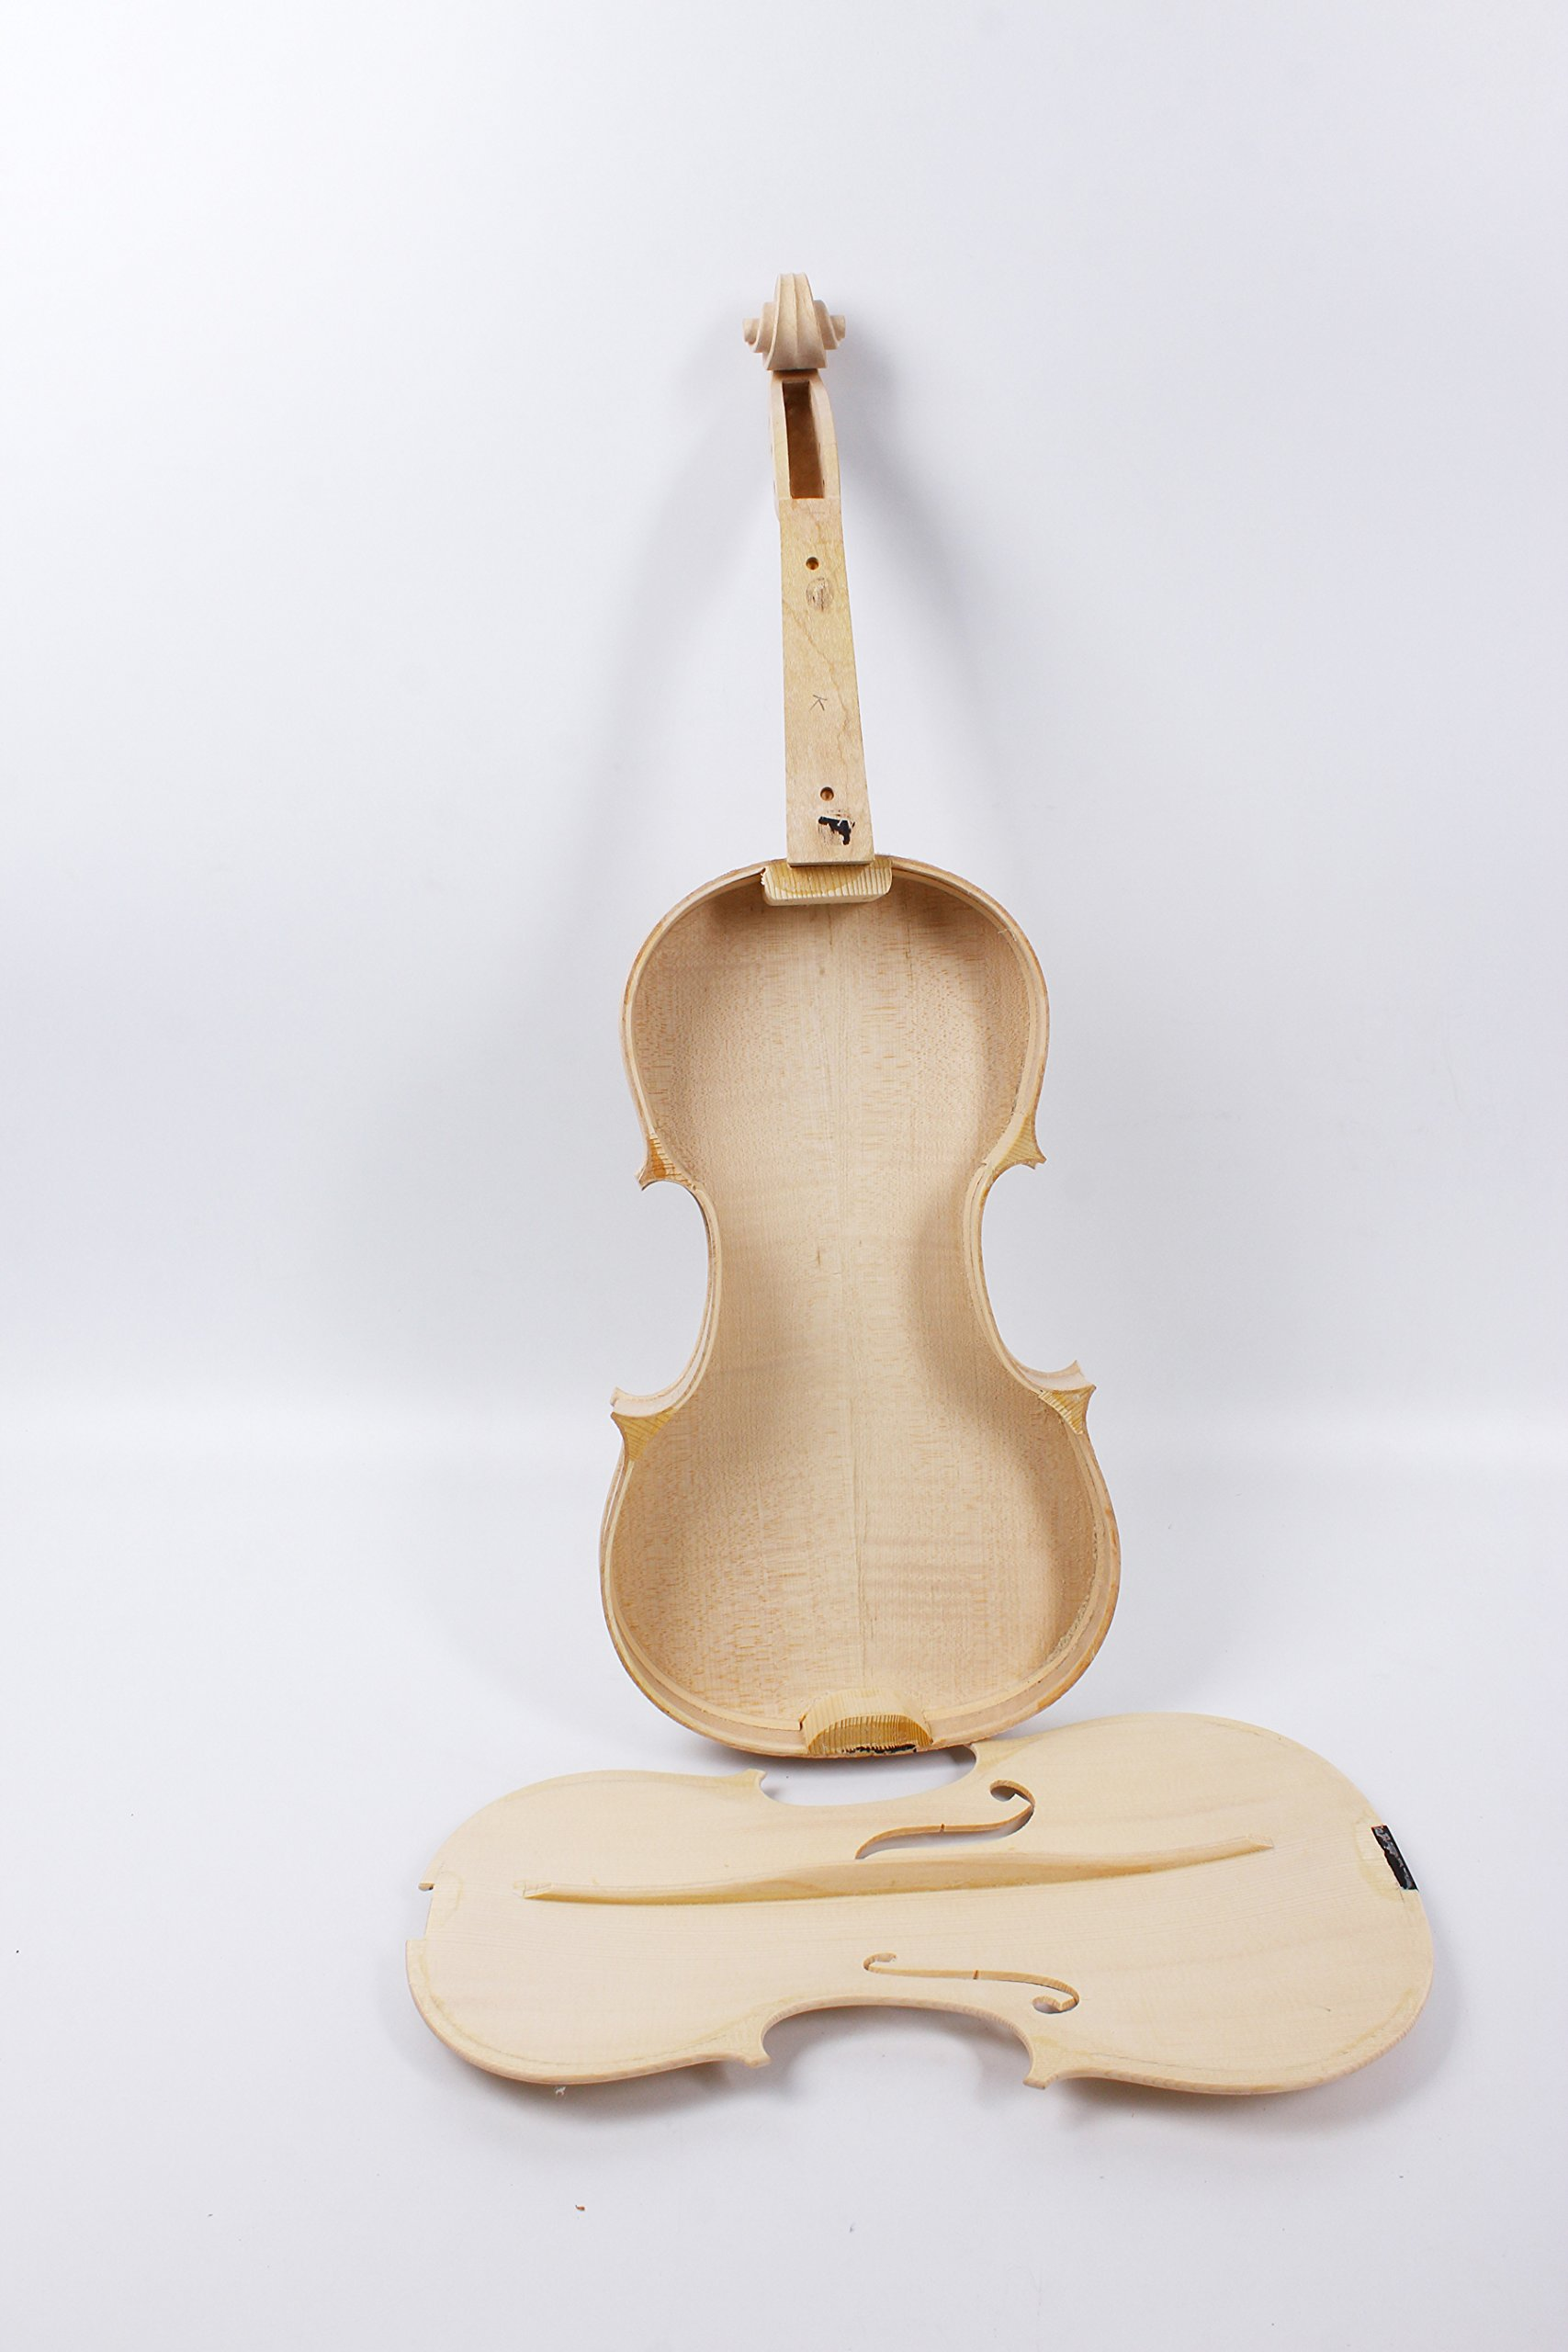 Yinfente Violin Unfinished White Violin 4/4 Unglued Violin Flame Maple & Spruce wood Top Violin Accessory Parts by yinfente